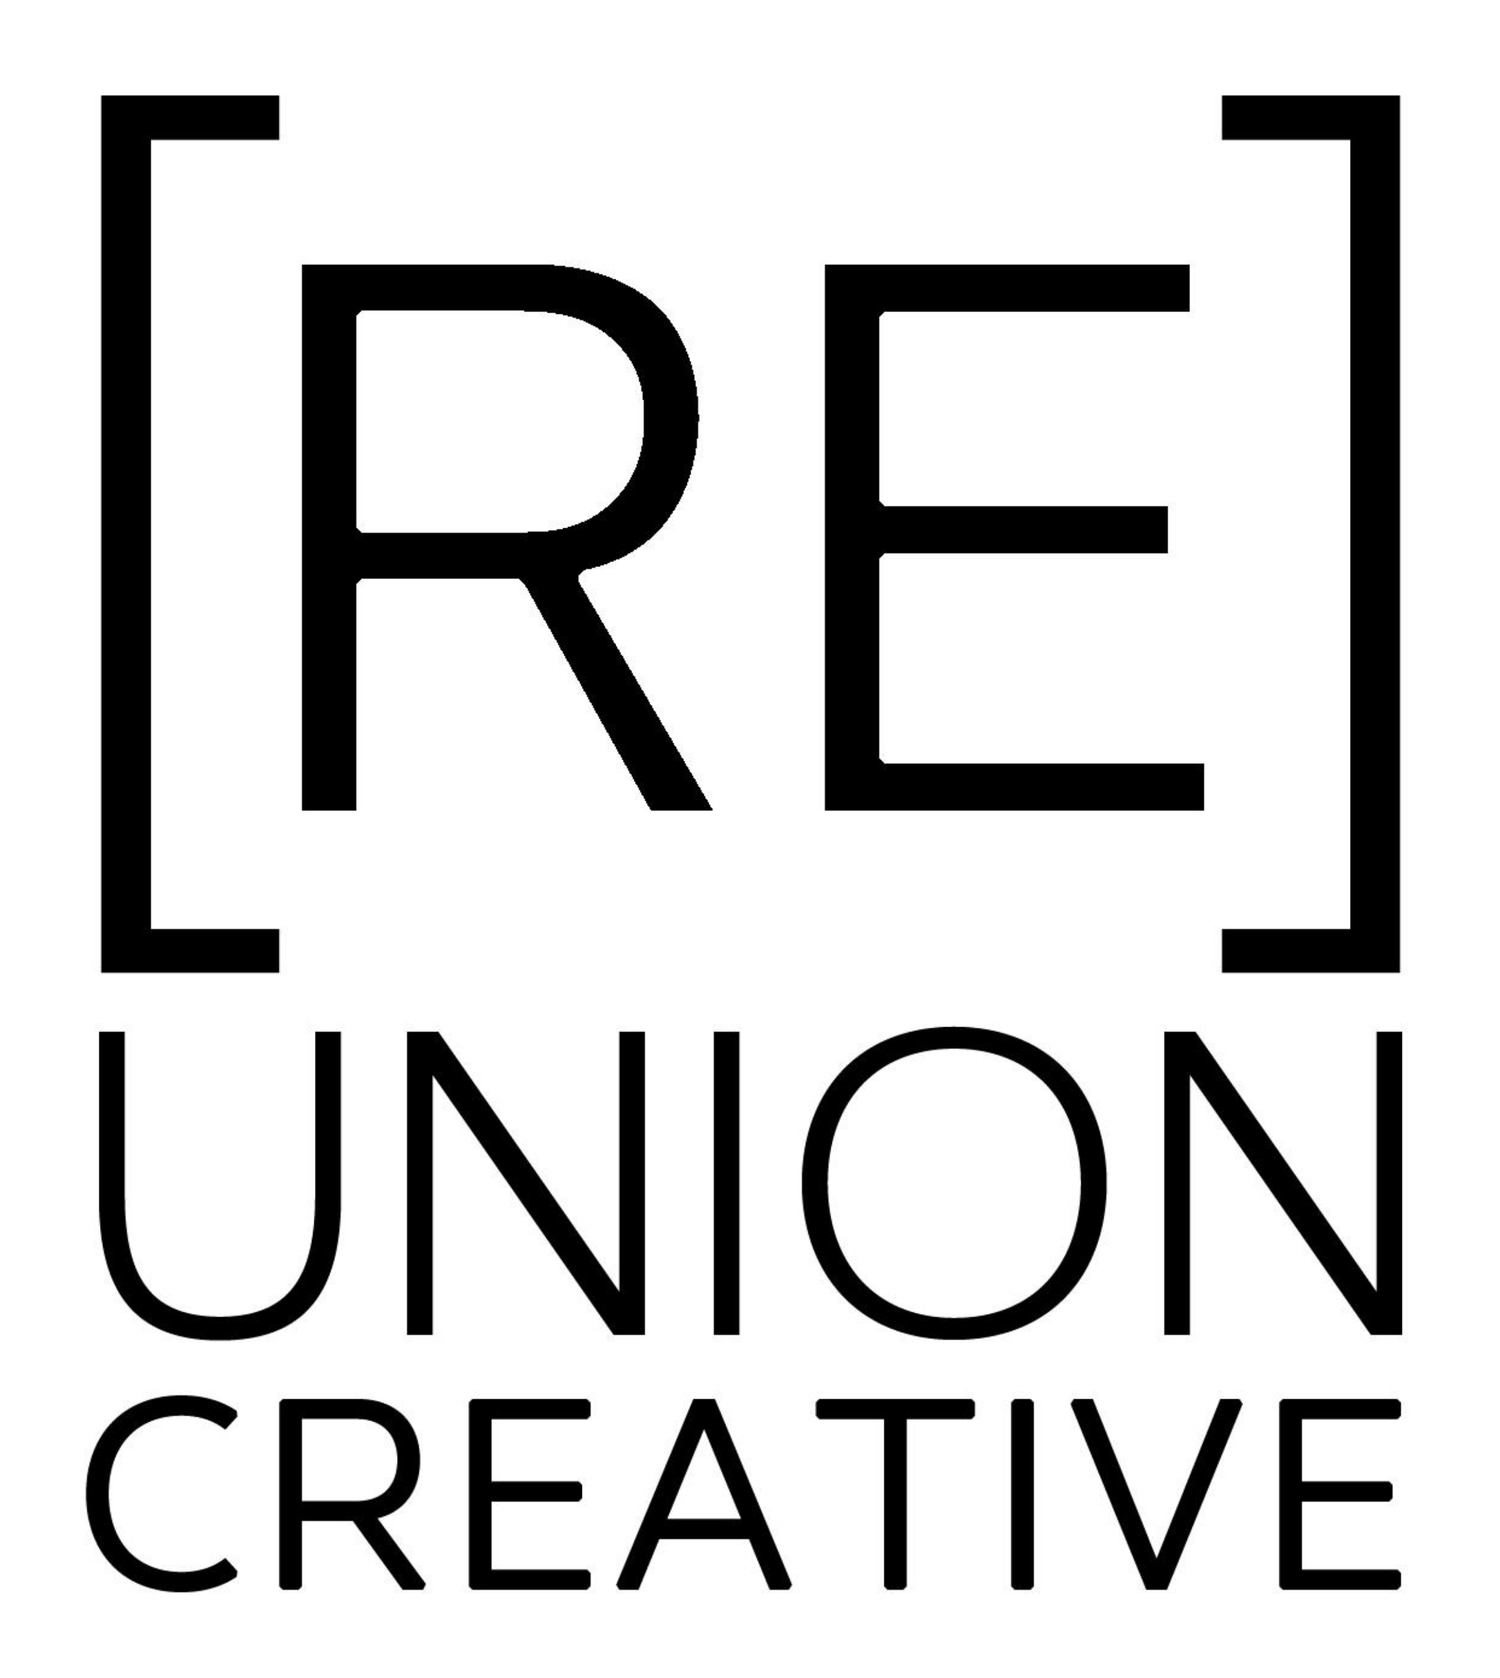 [RE] Union Creative